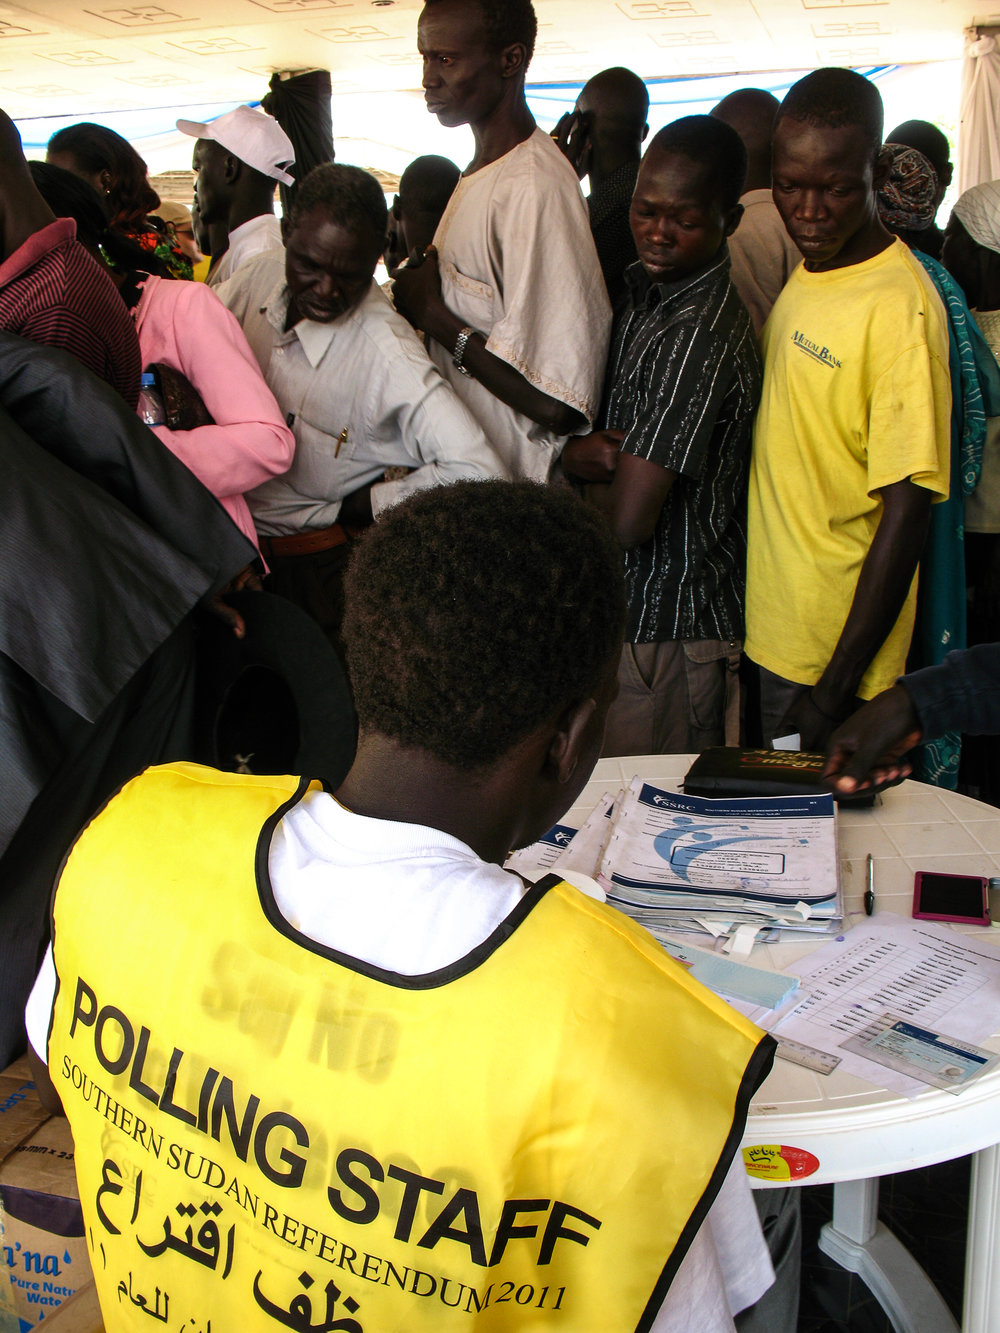 The first day of the elections saw thousand of voters line up at John Garang Mausoleum Park in Juba